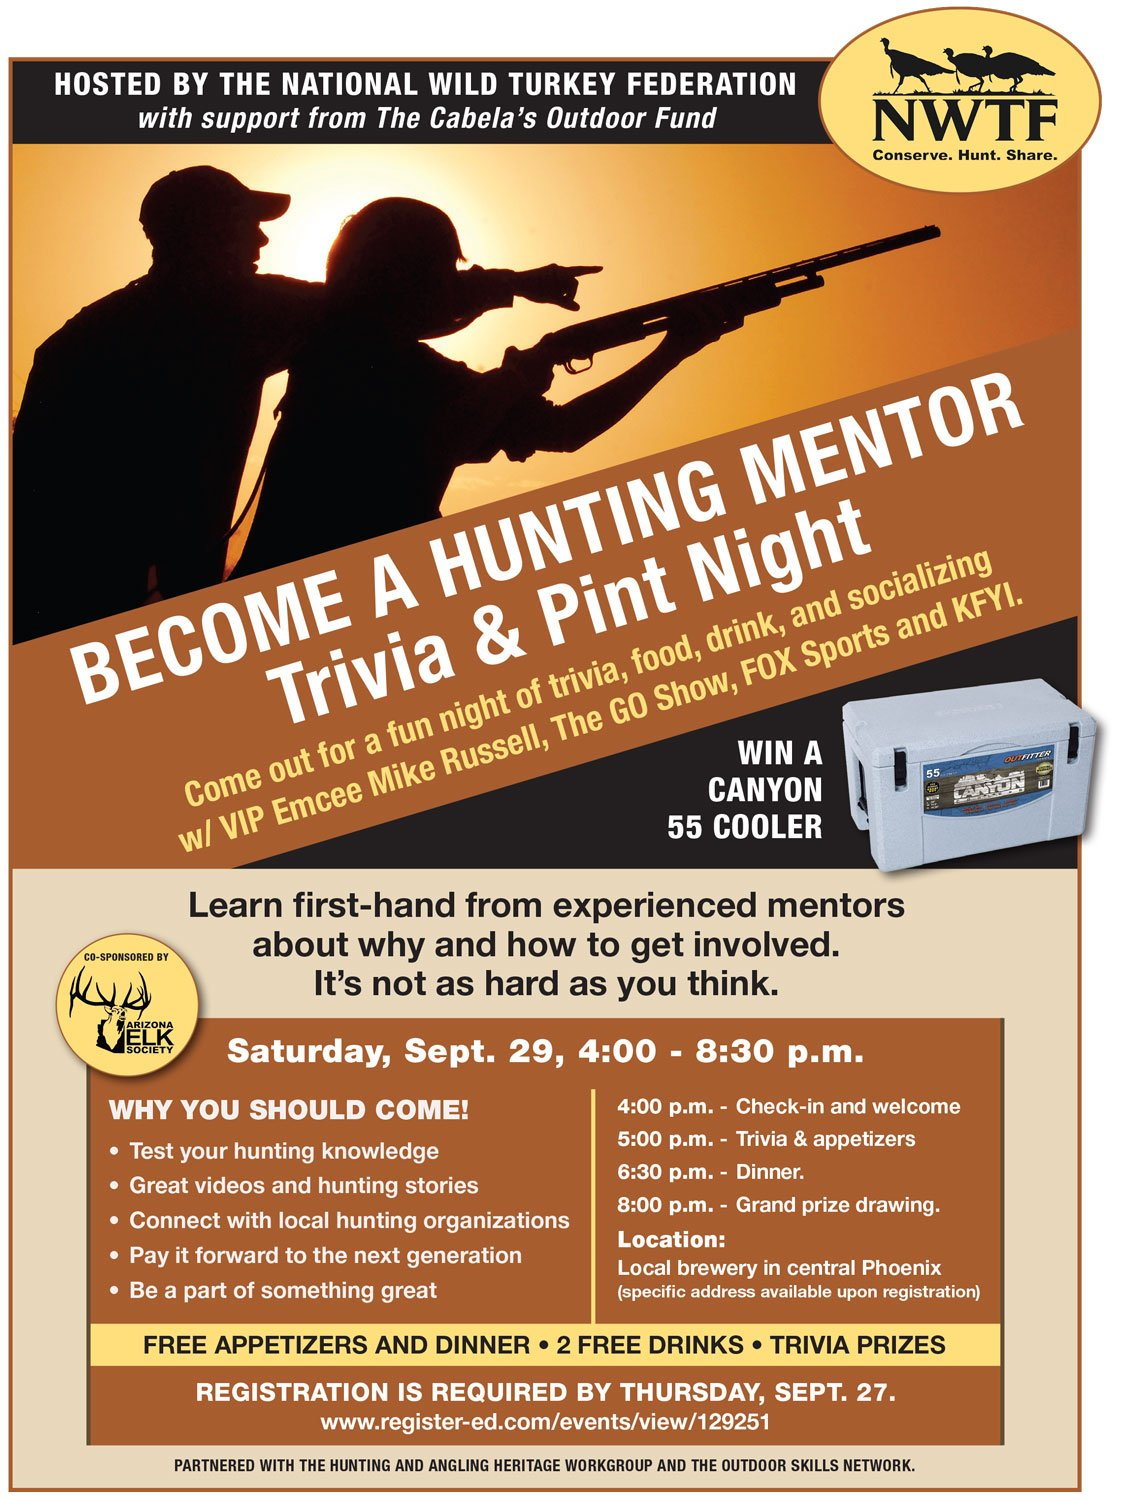 Interested in Becoming a Hunting Mentor? come to Trivia and